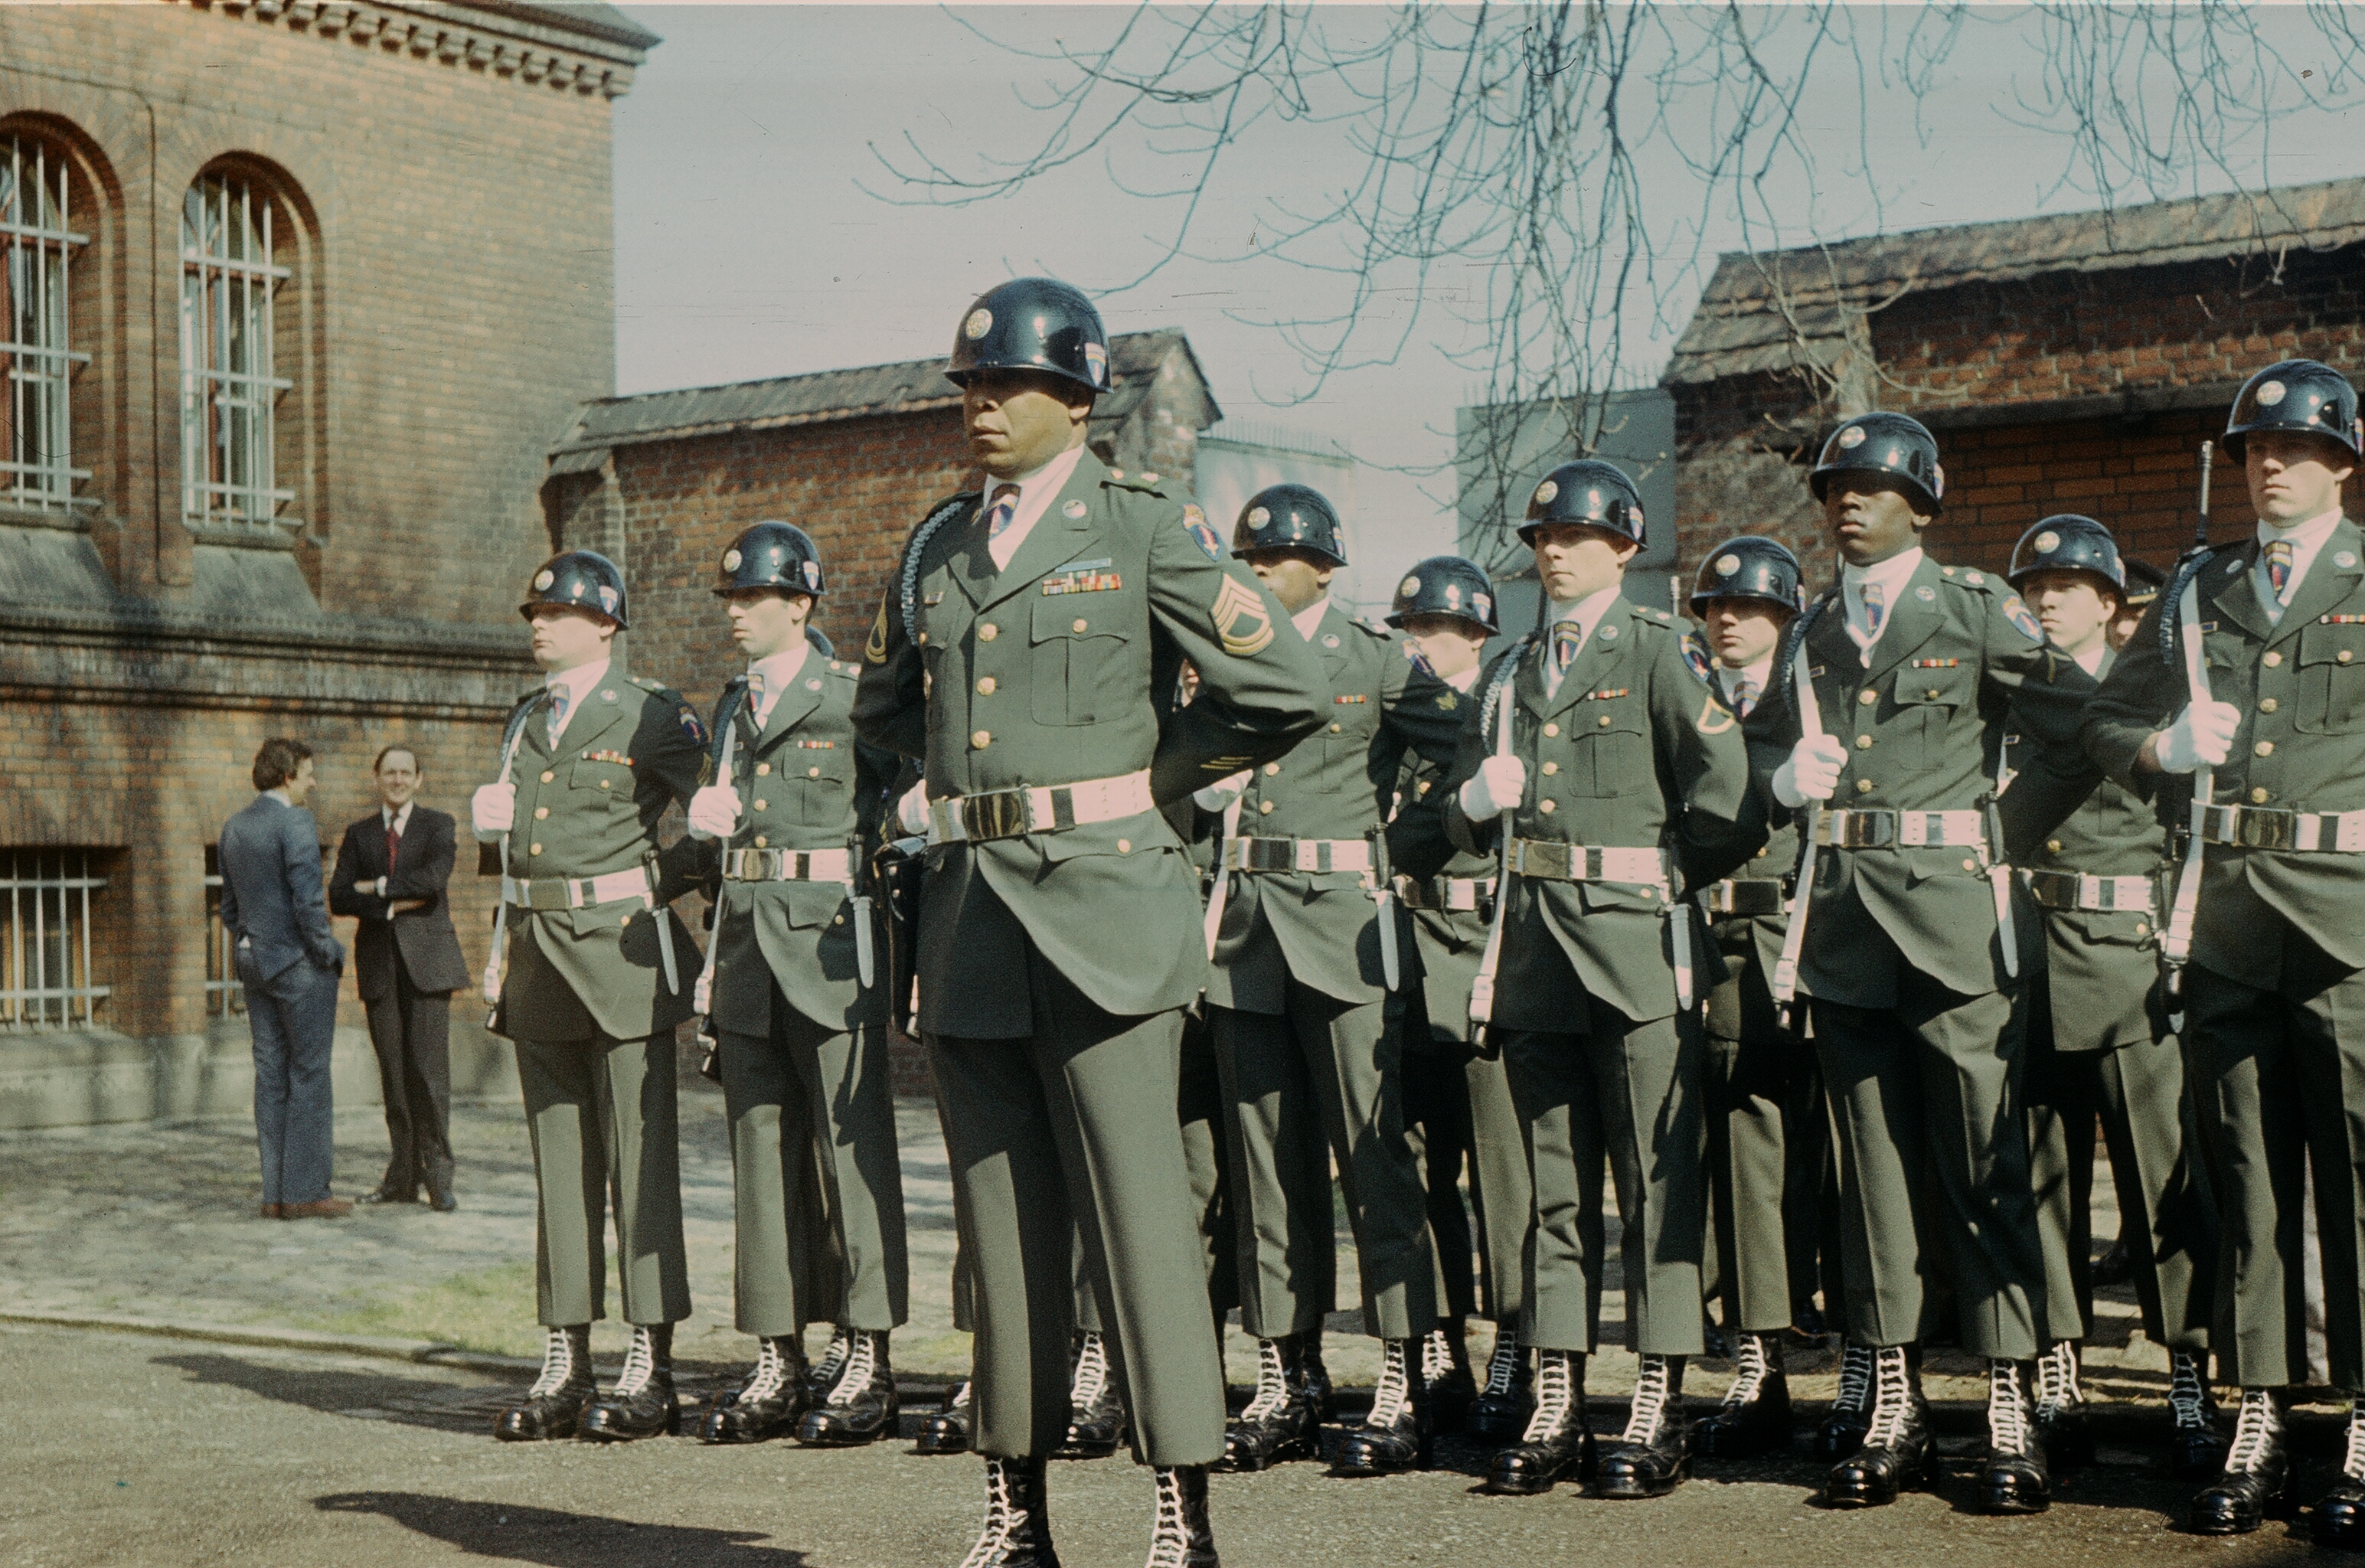 sofa army germany 4 seat dimensions 3089x2048 american guards at the infamous spandau prison